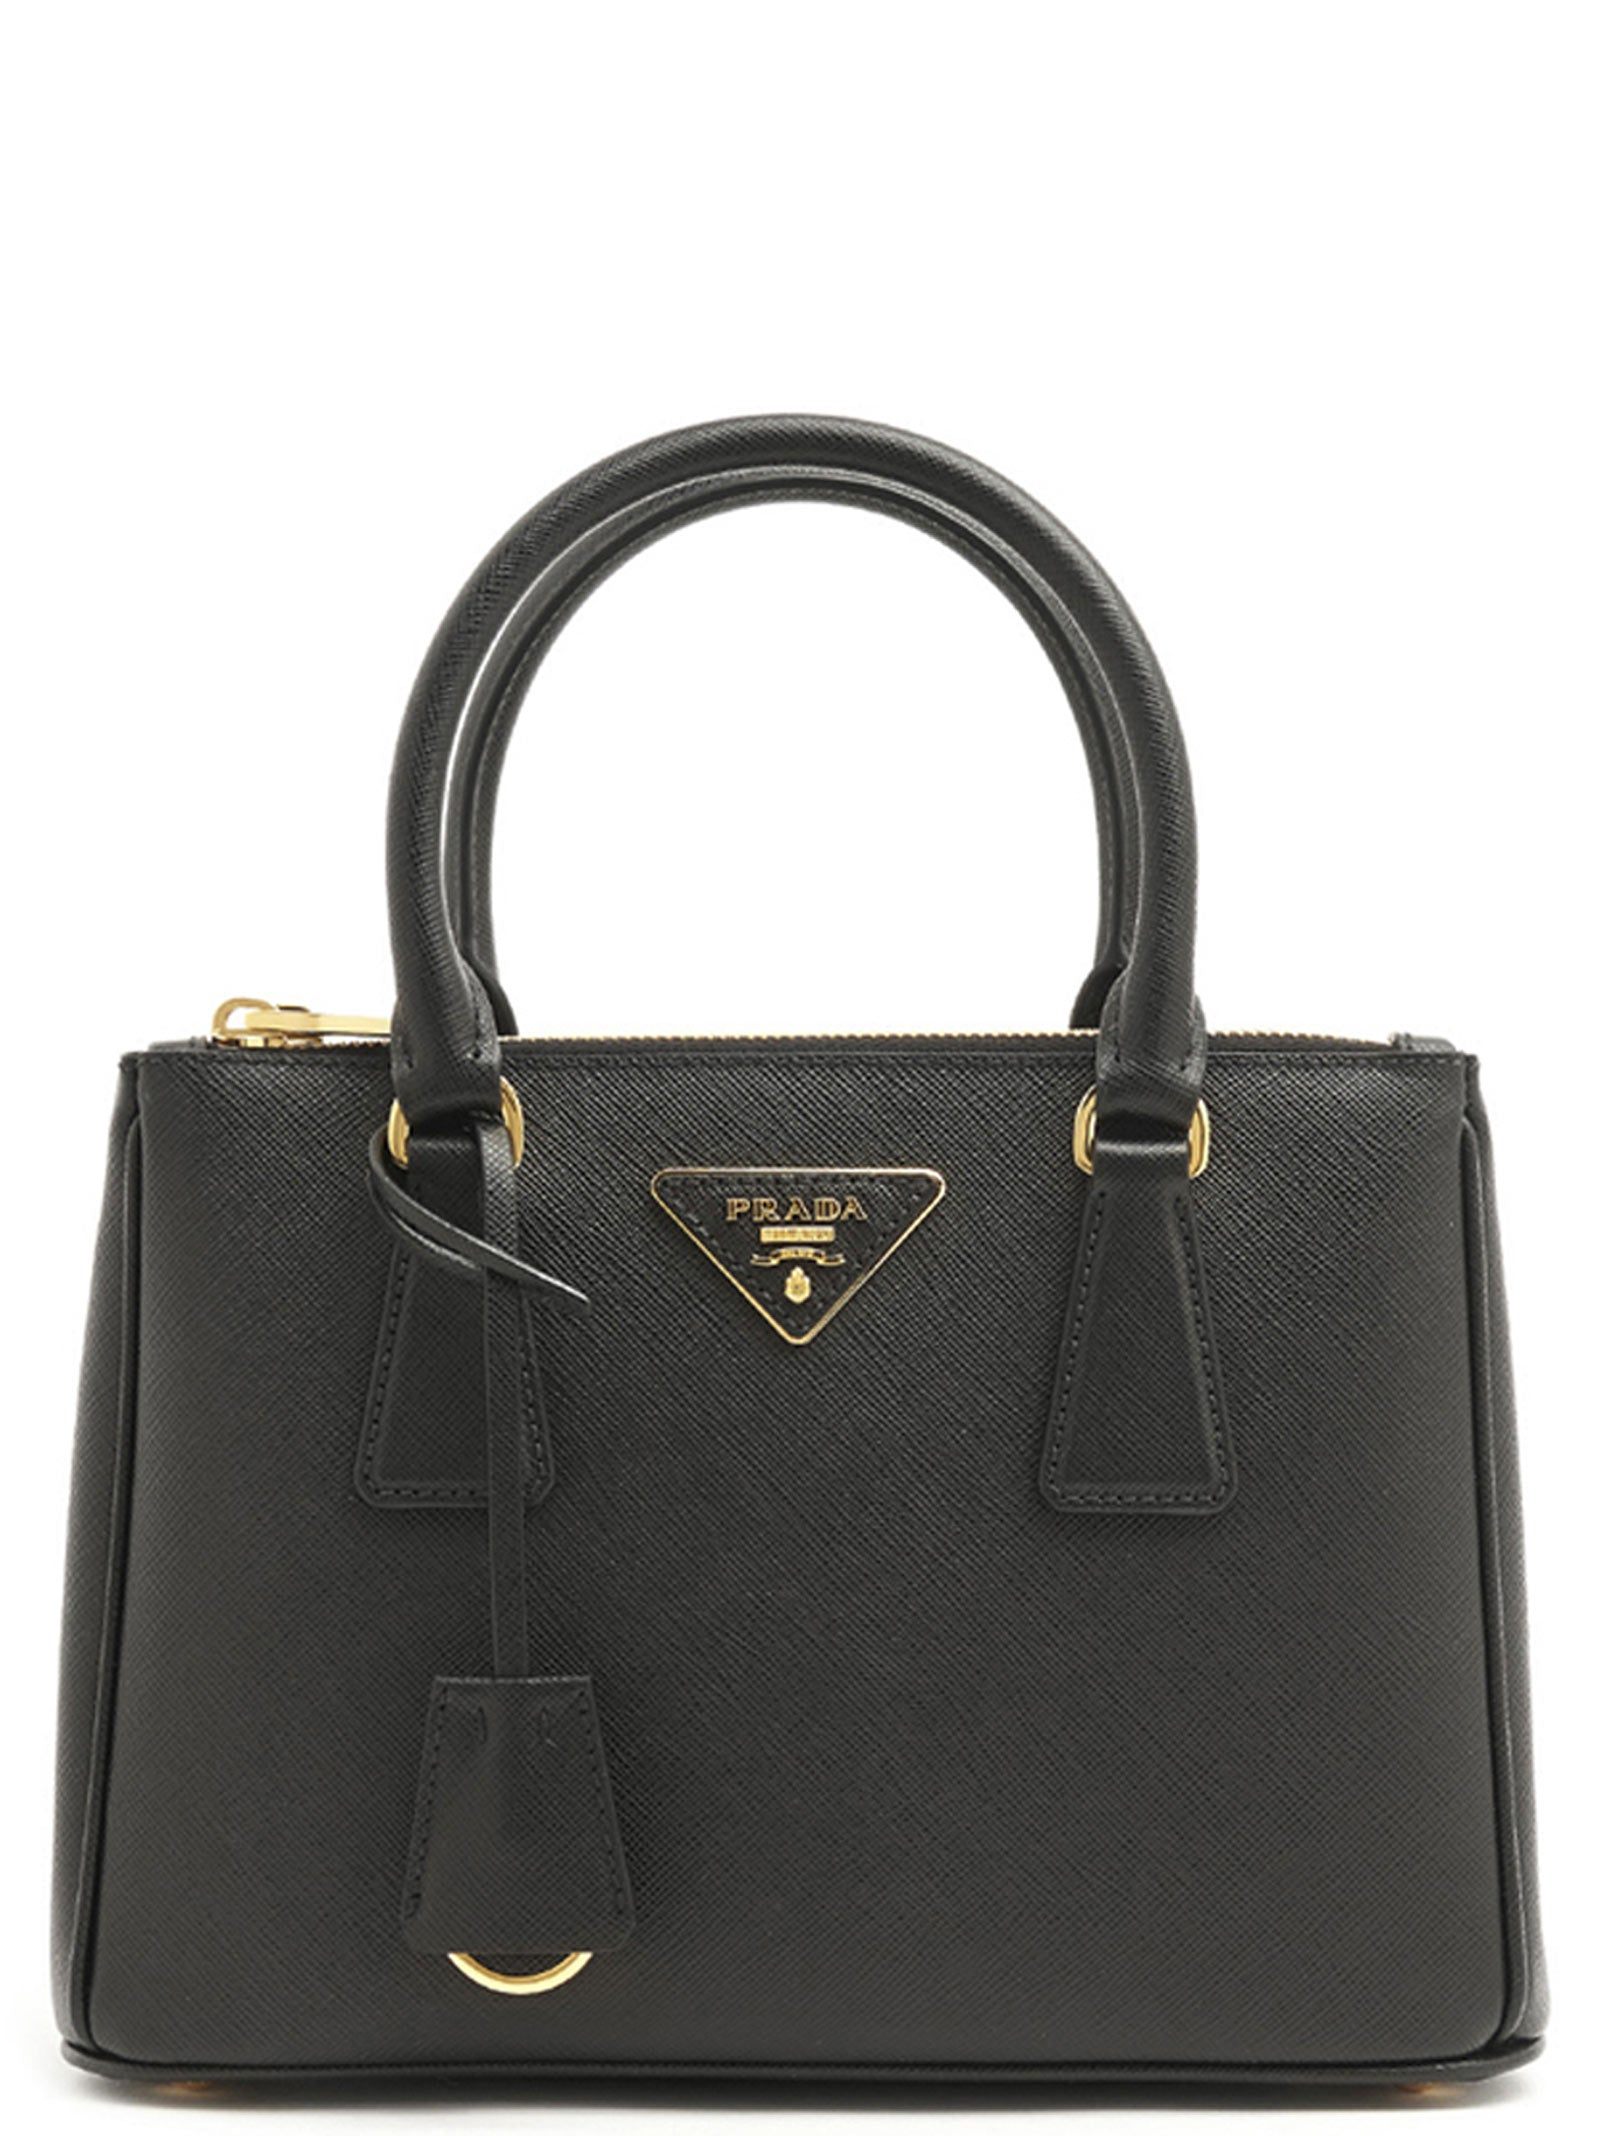 Prada PRADA GALLERIA MINI HANDBAG